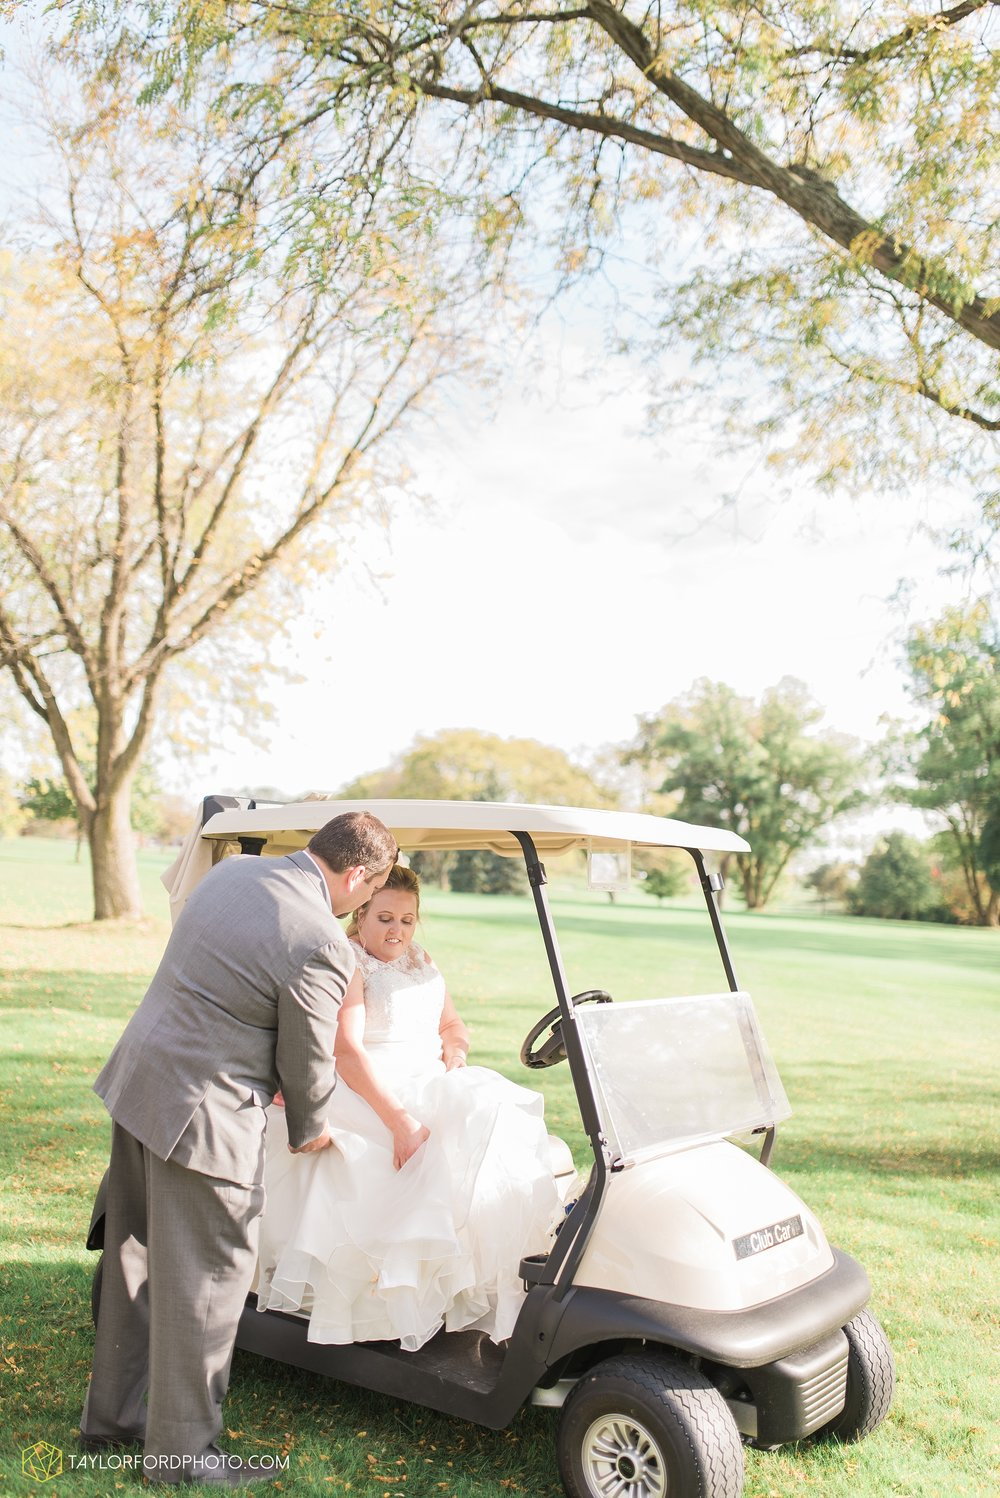 van-wert-ohio-wedding-photographer-Taylor-Ford-Photography-saint-marys-assumption-willow-bend-golf-course_4336.jpg